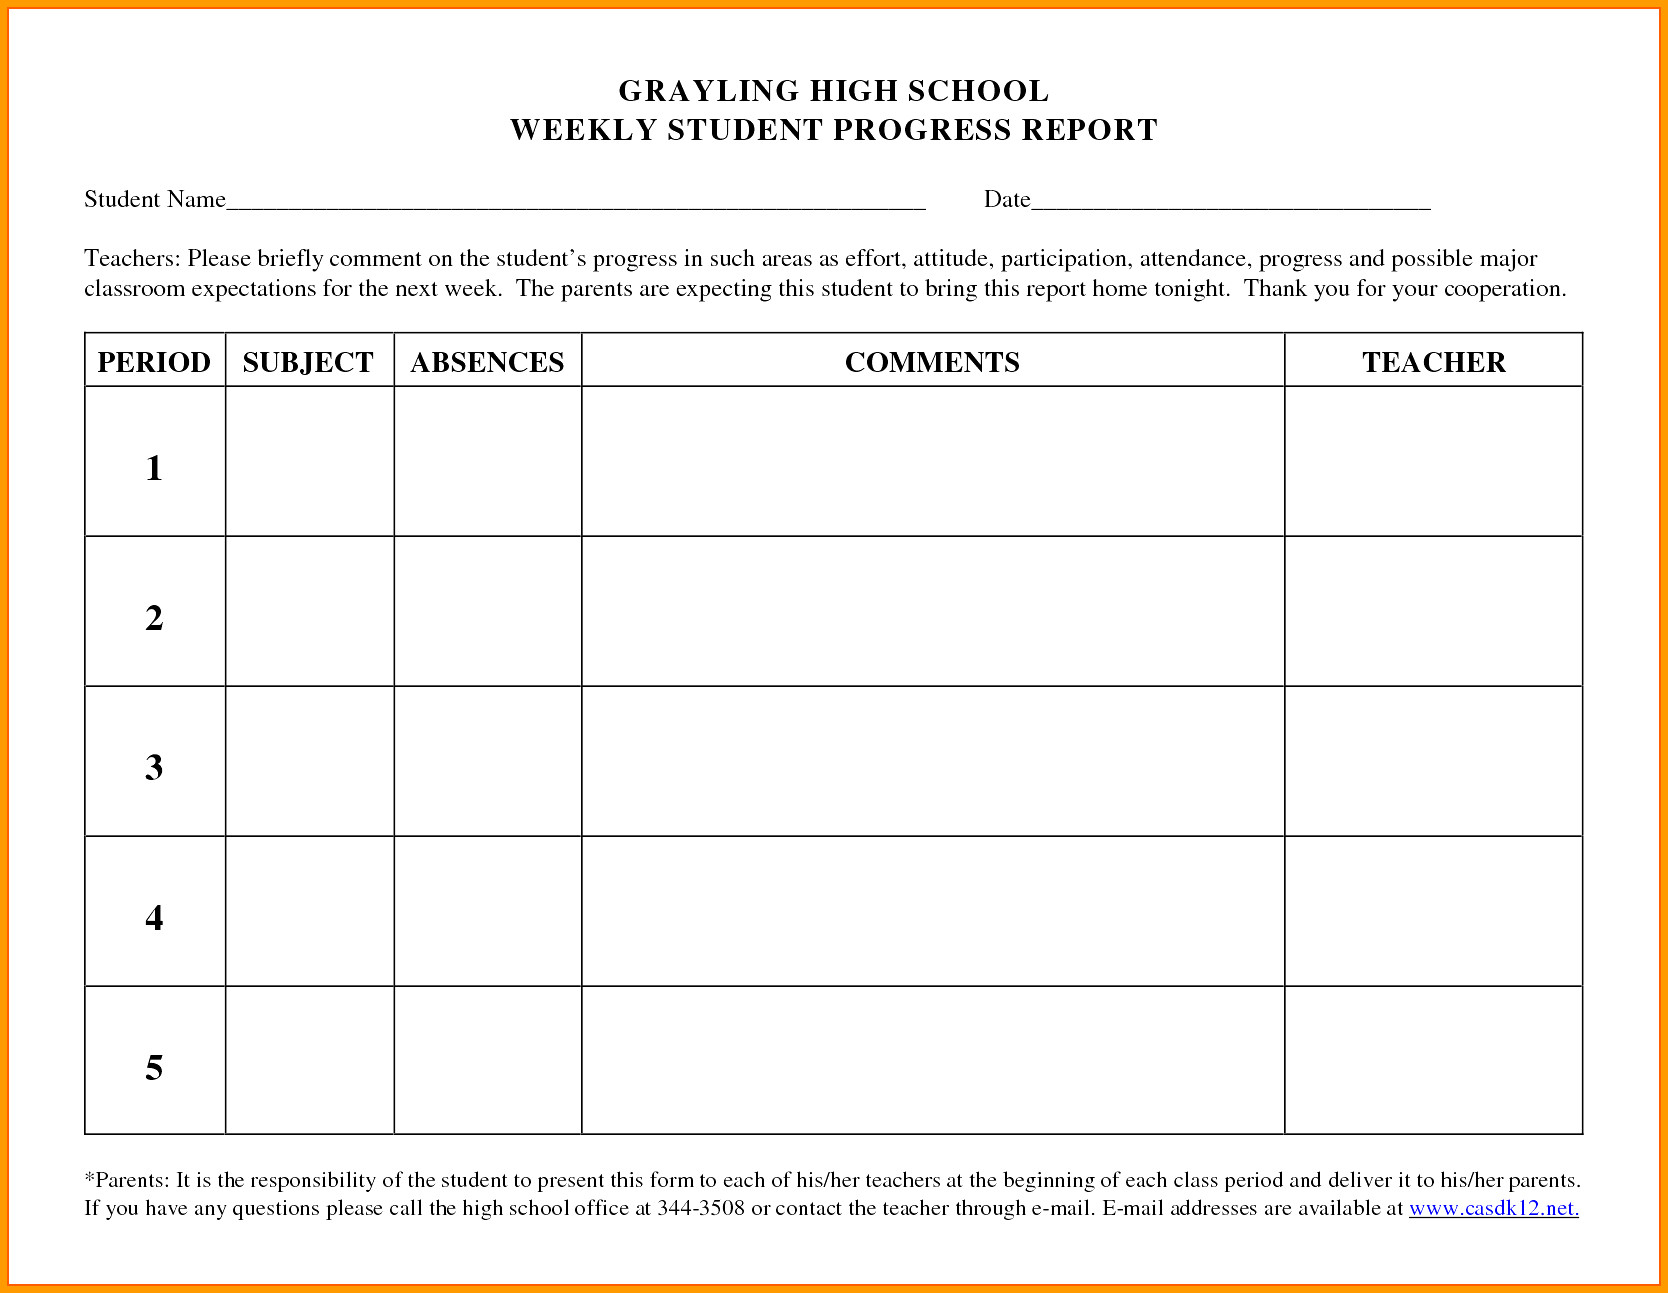 Student Progress Report Template Ideas Students Beautiful Weekly Intended For Student Progress Report Template